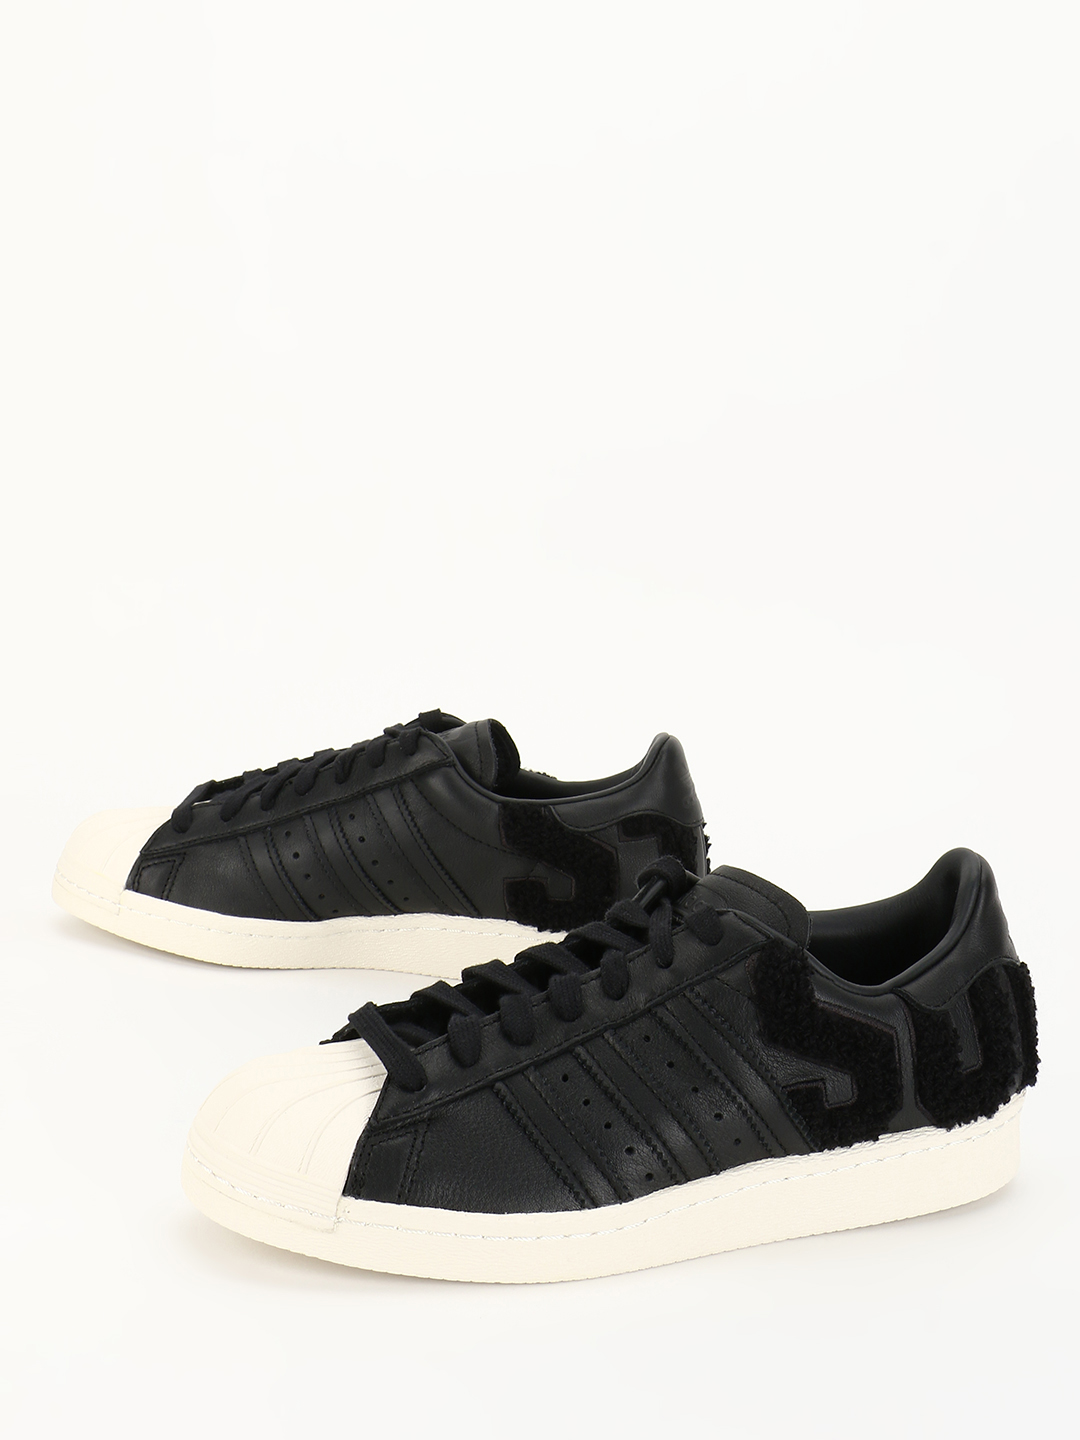 Adidas Originals Black Superstar 80s Shoes 1